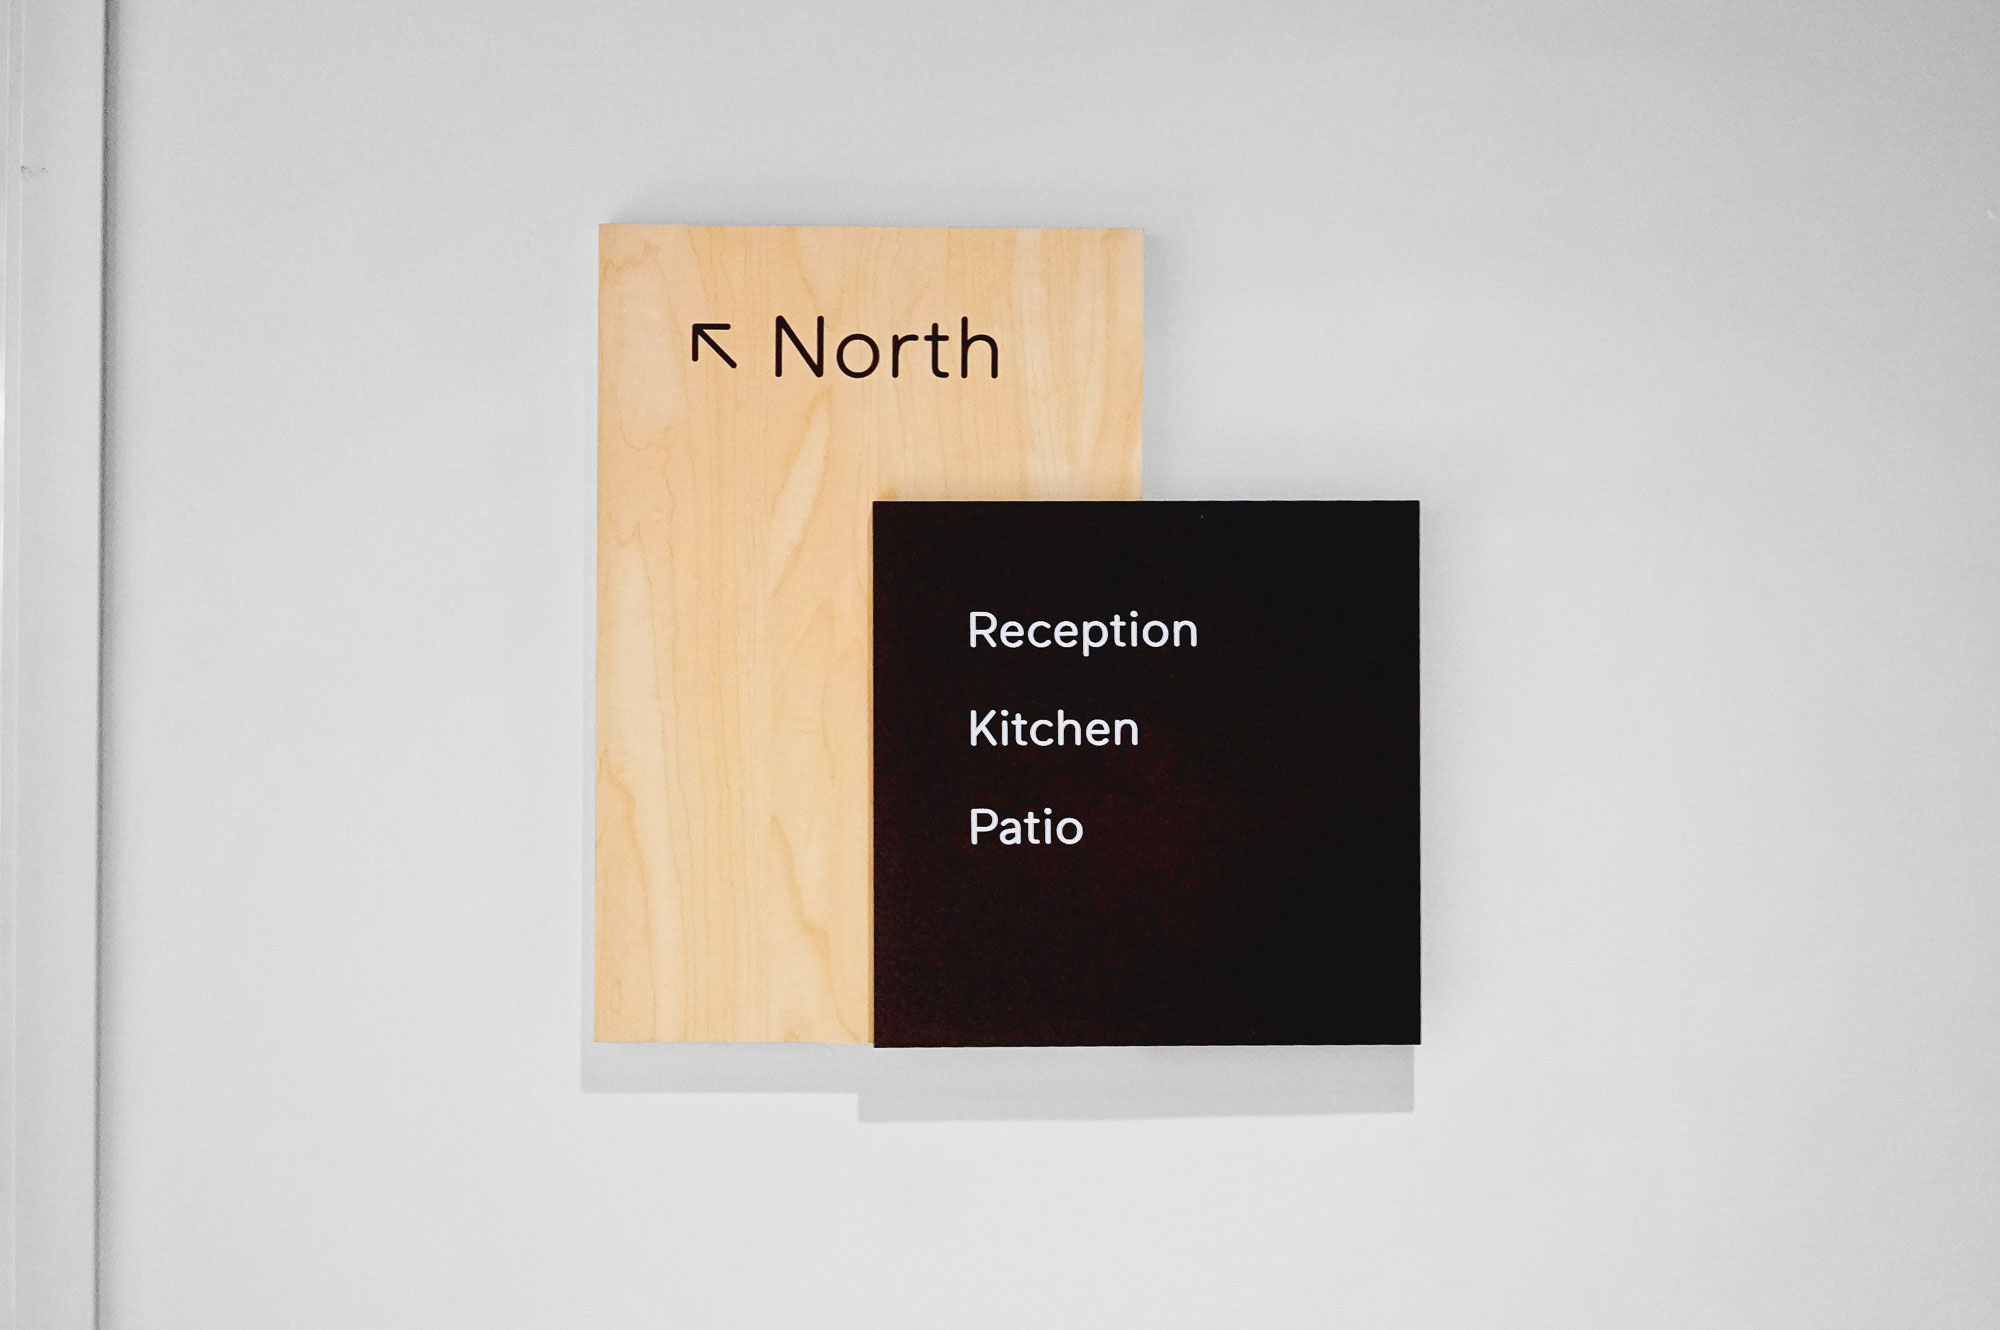 Modern light wood and colored wayfinding wall panels for Scale, a San Francisco based company delivering high quality training data for AI applications such as self-driving cars, mapping, AR/VR, robotics, and more.